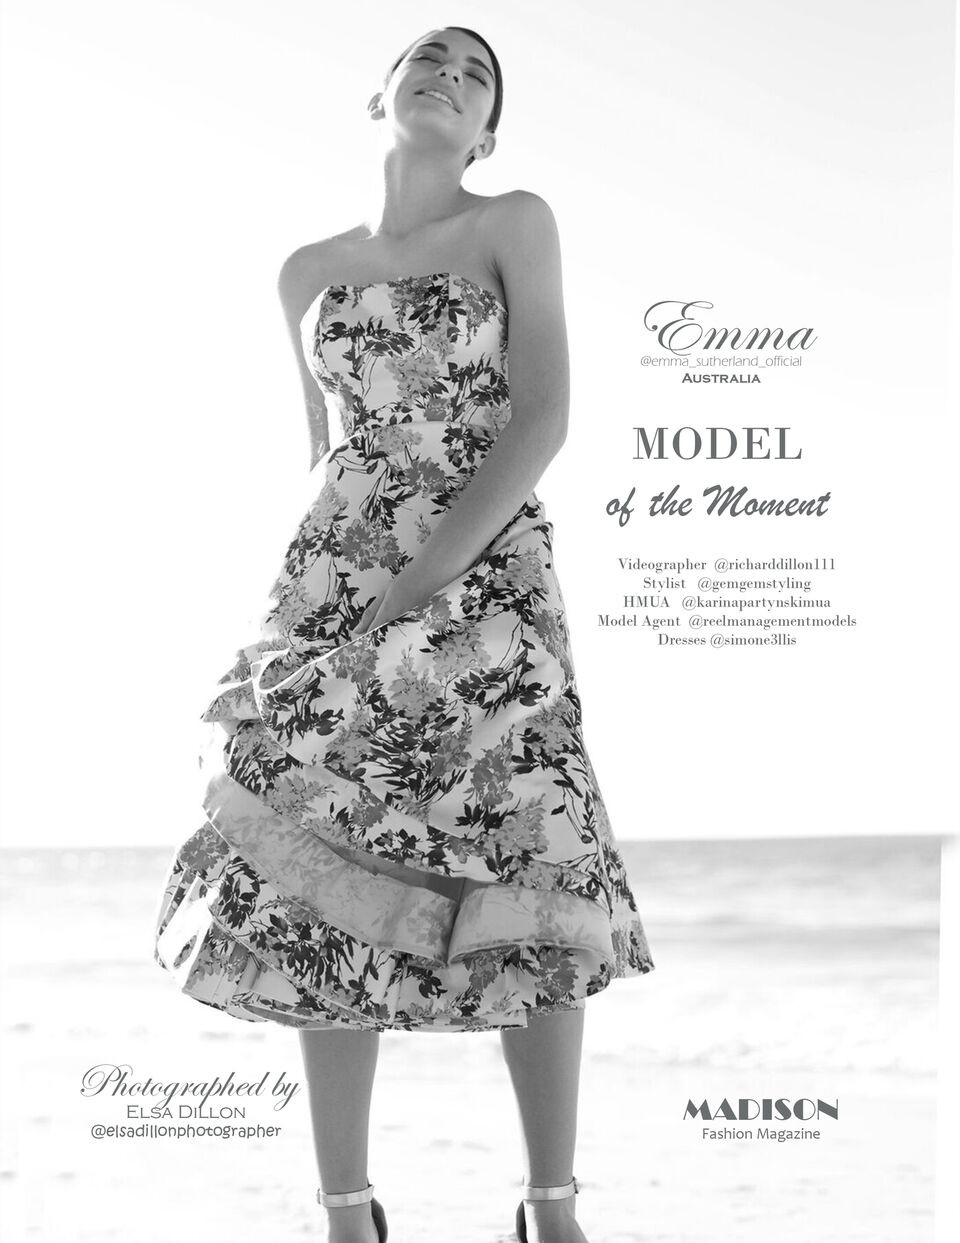 Emma Sutherland; reel management model; MADISON magazine; Elsa Dillon photographer